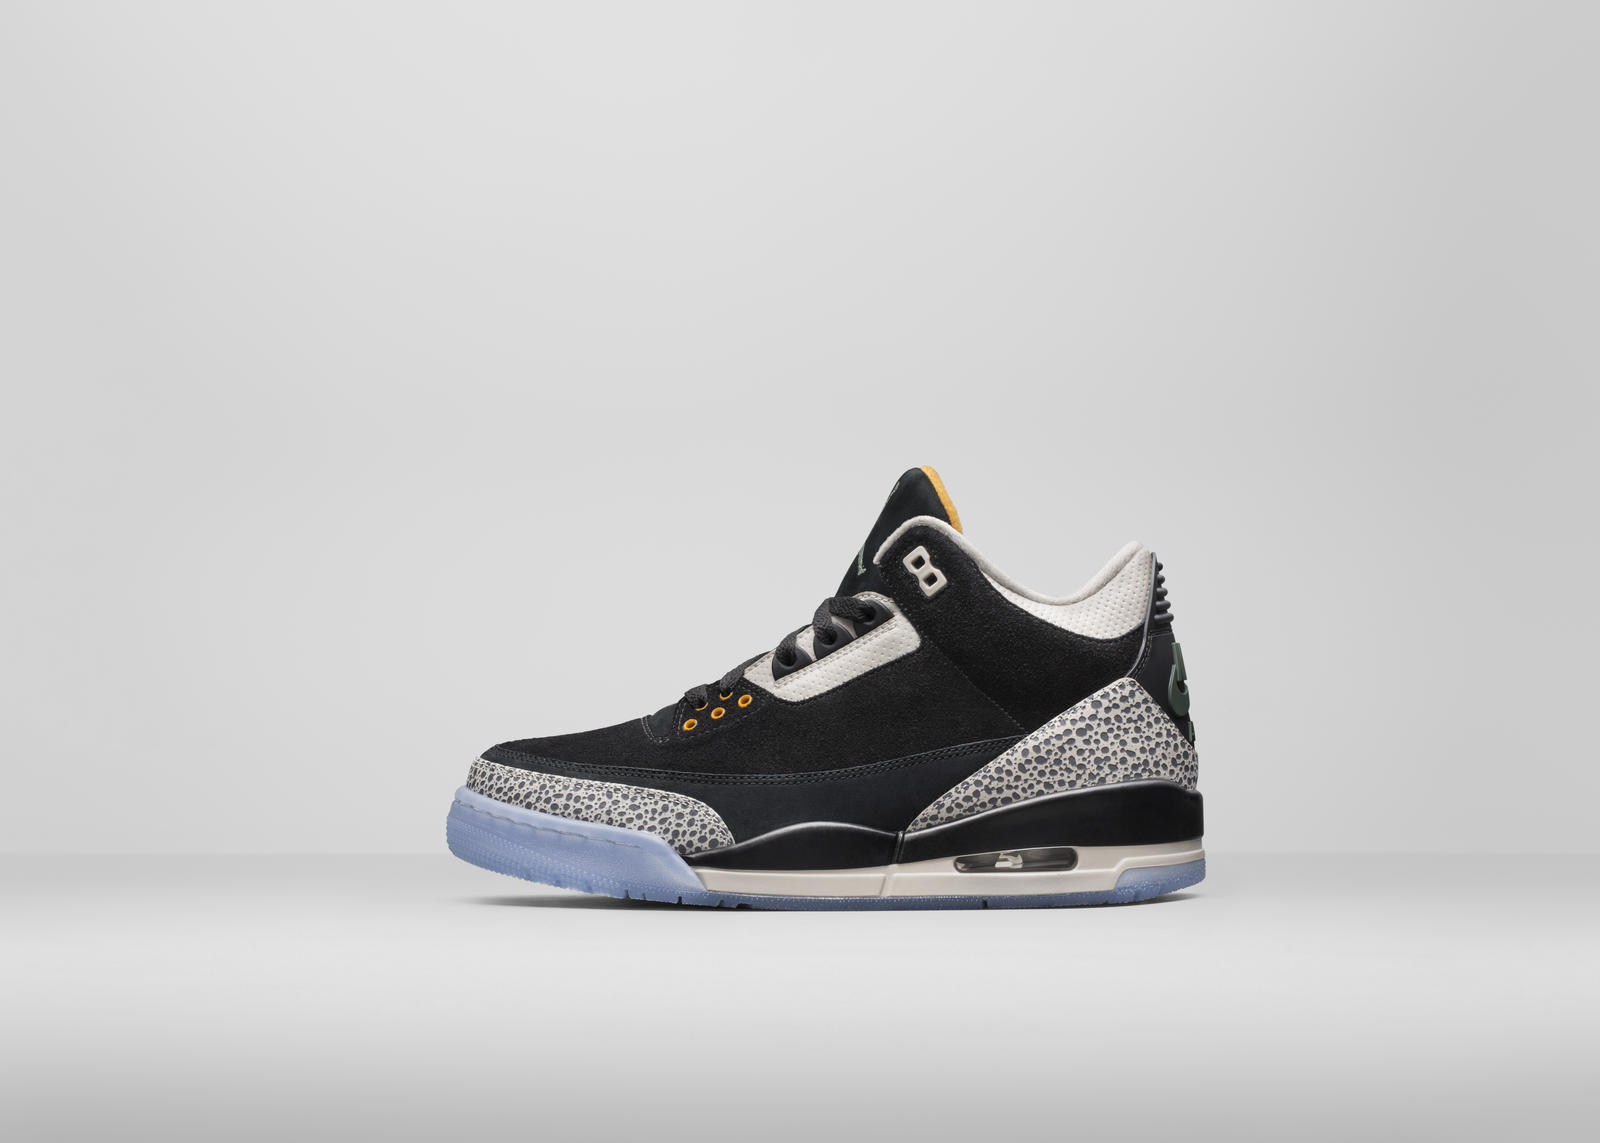 c2dda65d7bb4 I grew up watching Michael Jordan and my first Nike (Jordan) was Air Jordan  1 ...